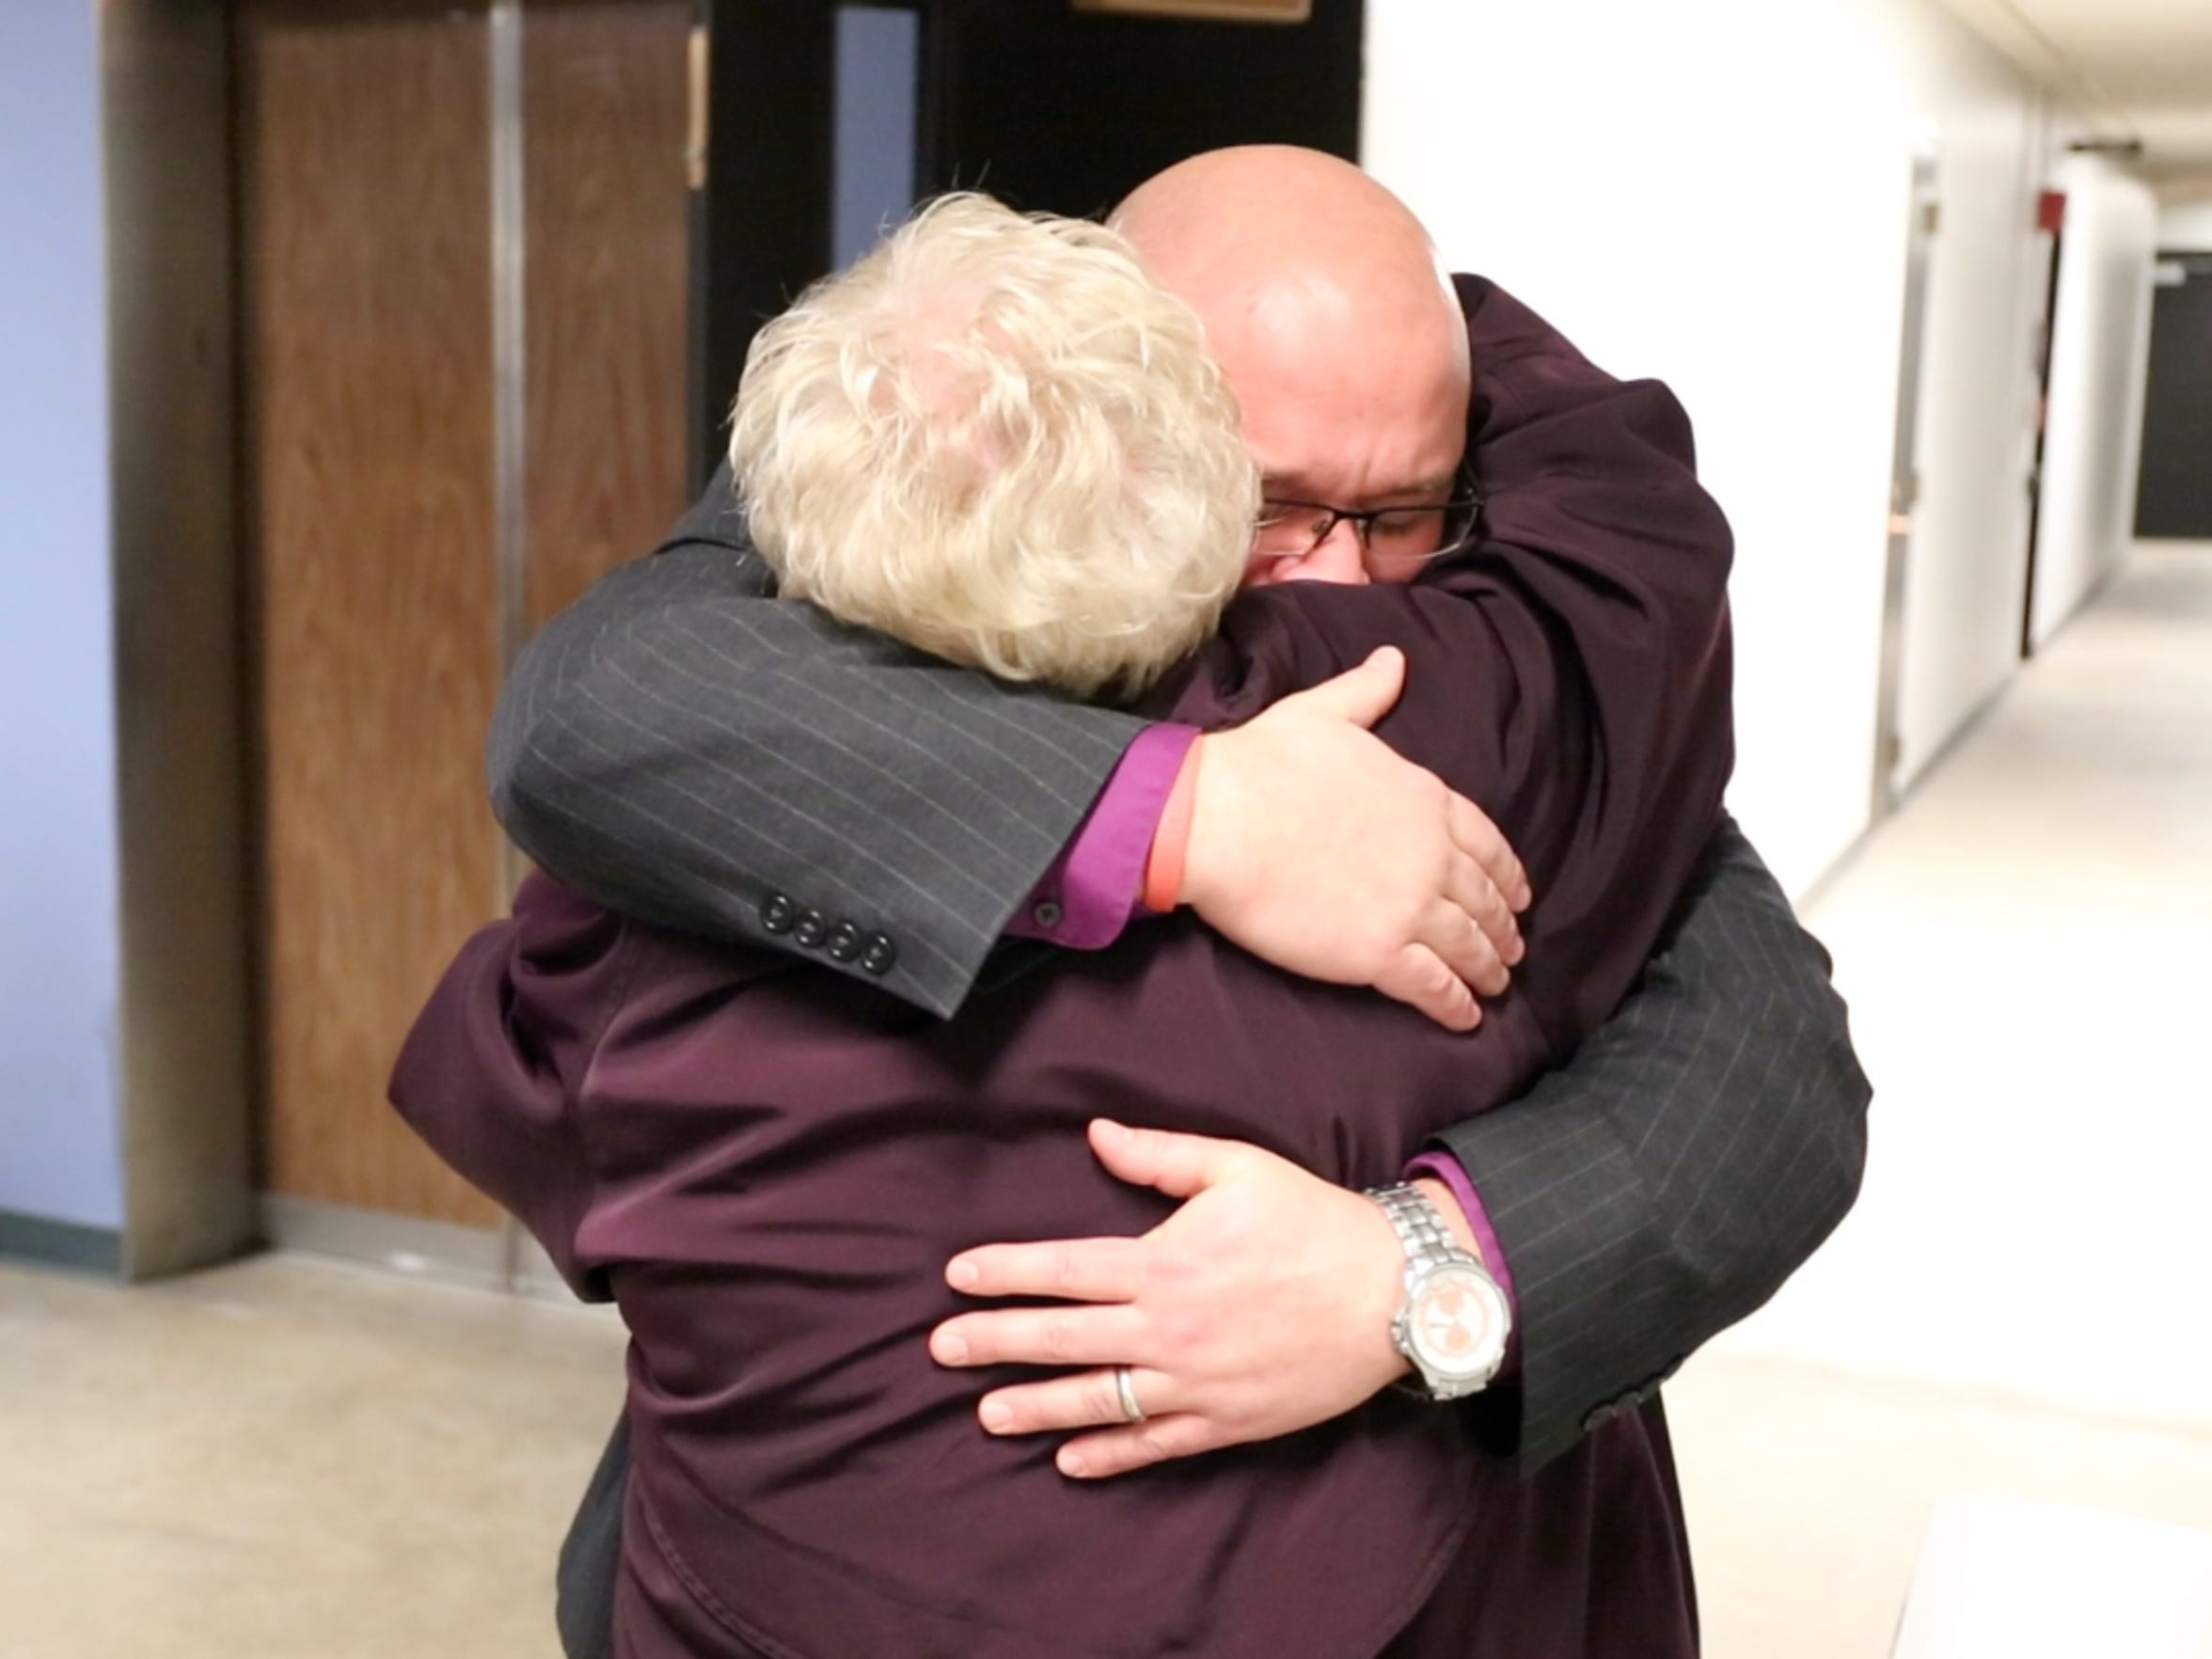 Tony Weers, superintendent of the Tri-Center School District hugs Rhonda McKenzie, business manager of the district, following a school budget review committee hearing where it was decided that their district would be granted their request for additional funding on Wednesday, Jan. 21, 2015, at the headquarters of the Iowa Board of Education in Des Moines, Iowa.